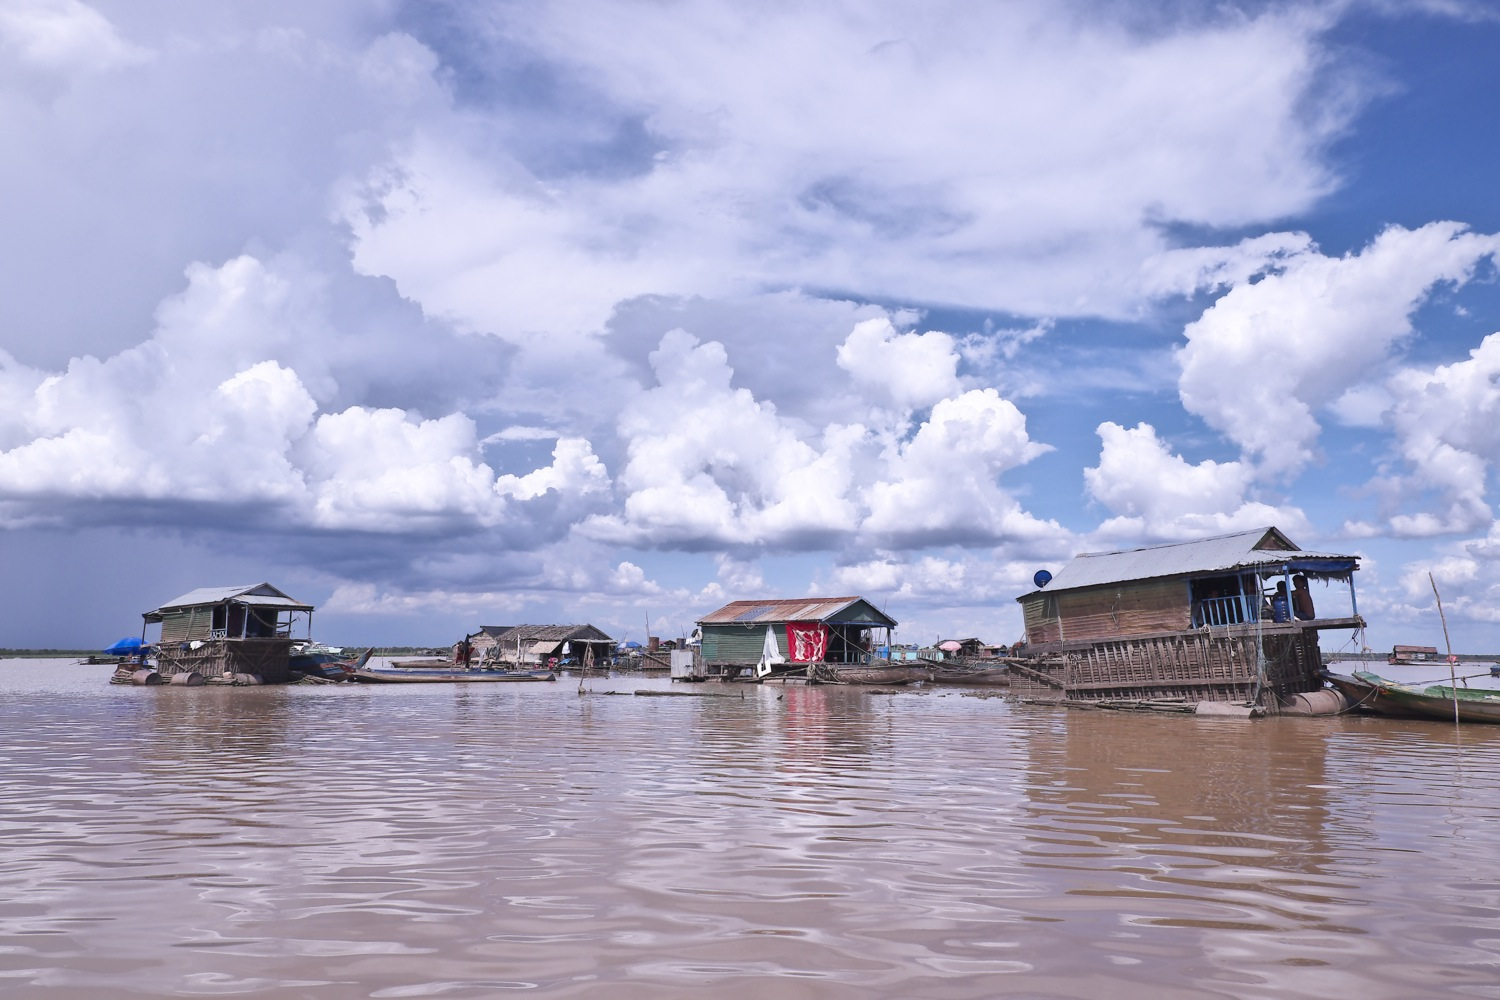 Vietnamese Floating Village  on Tonle Sap lake